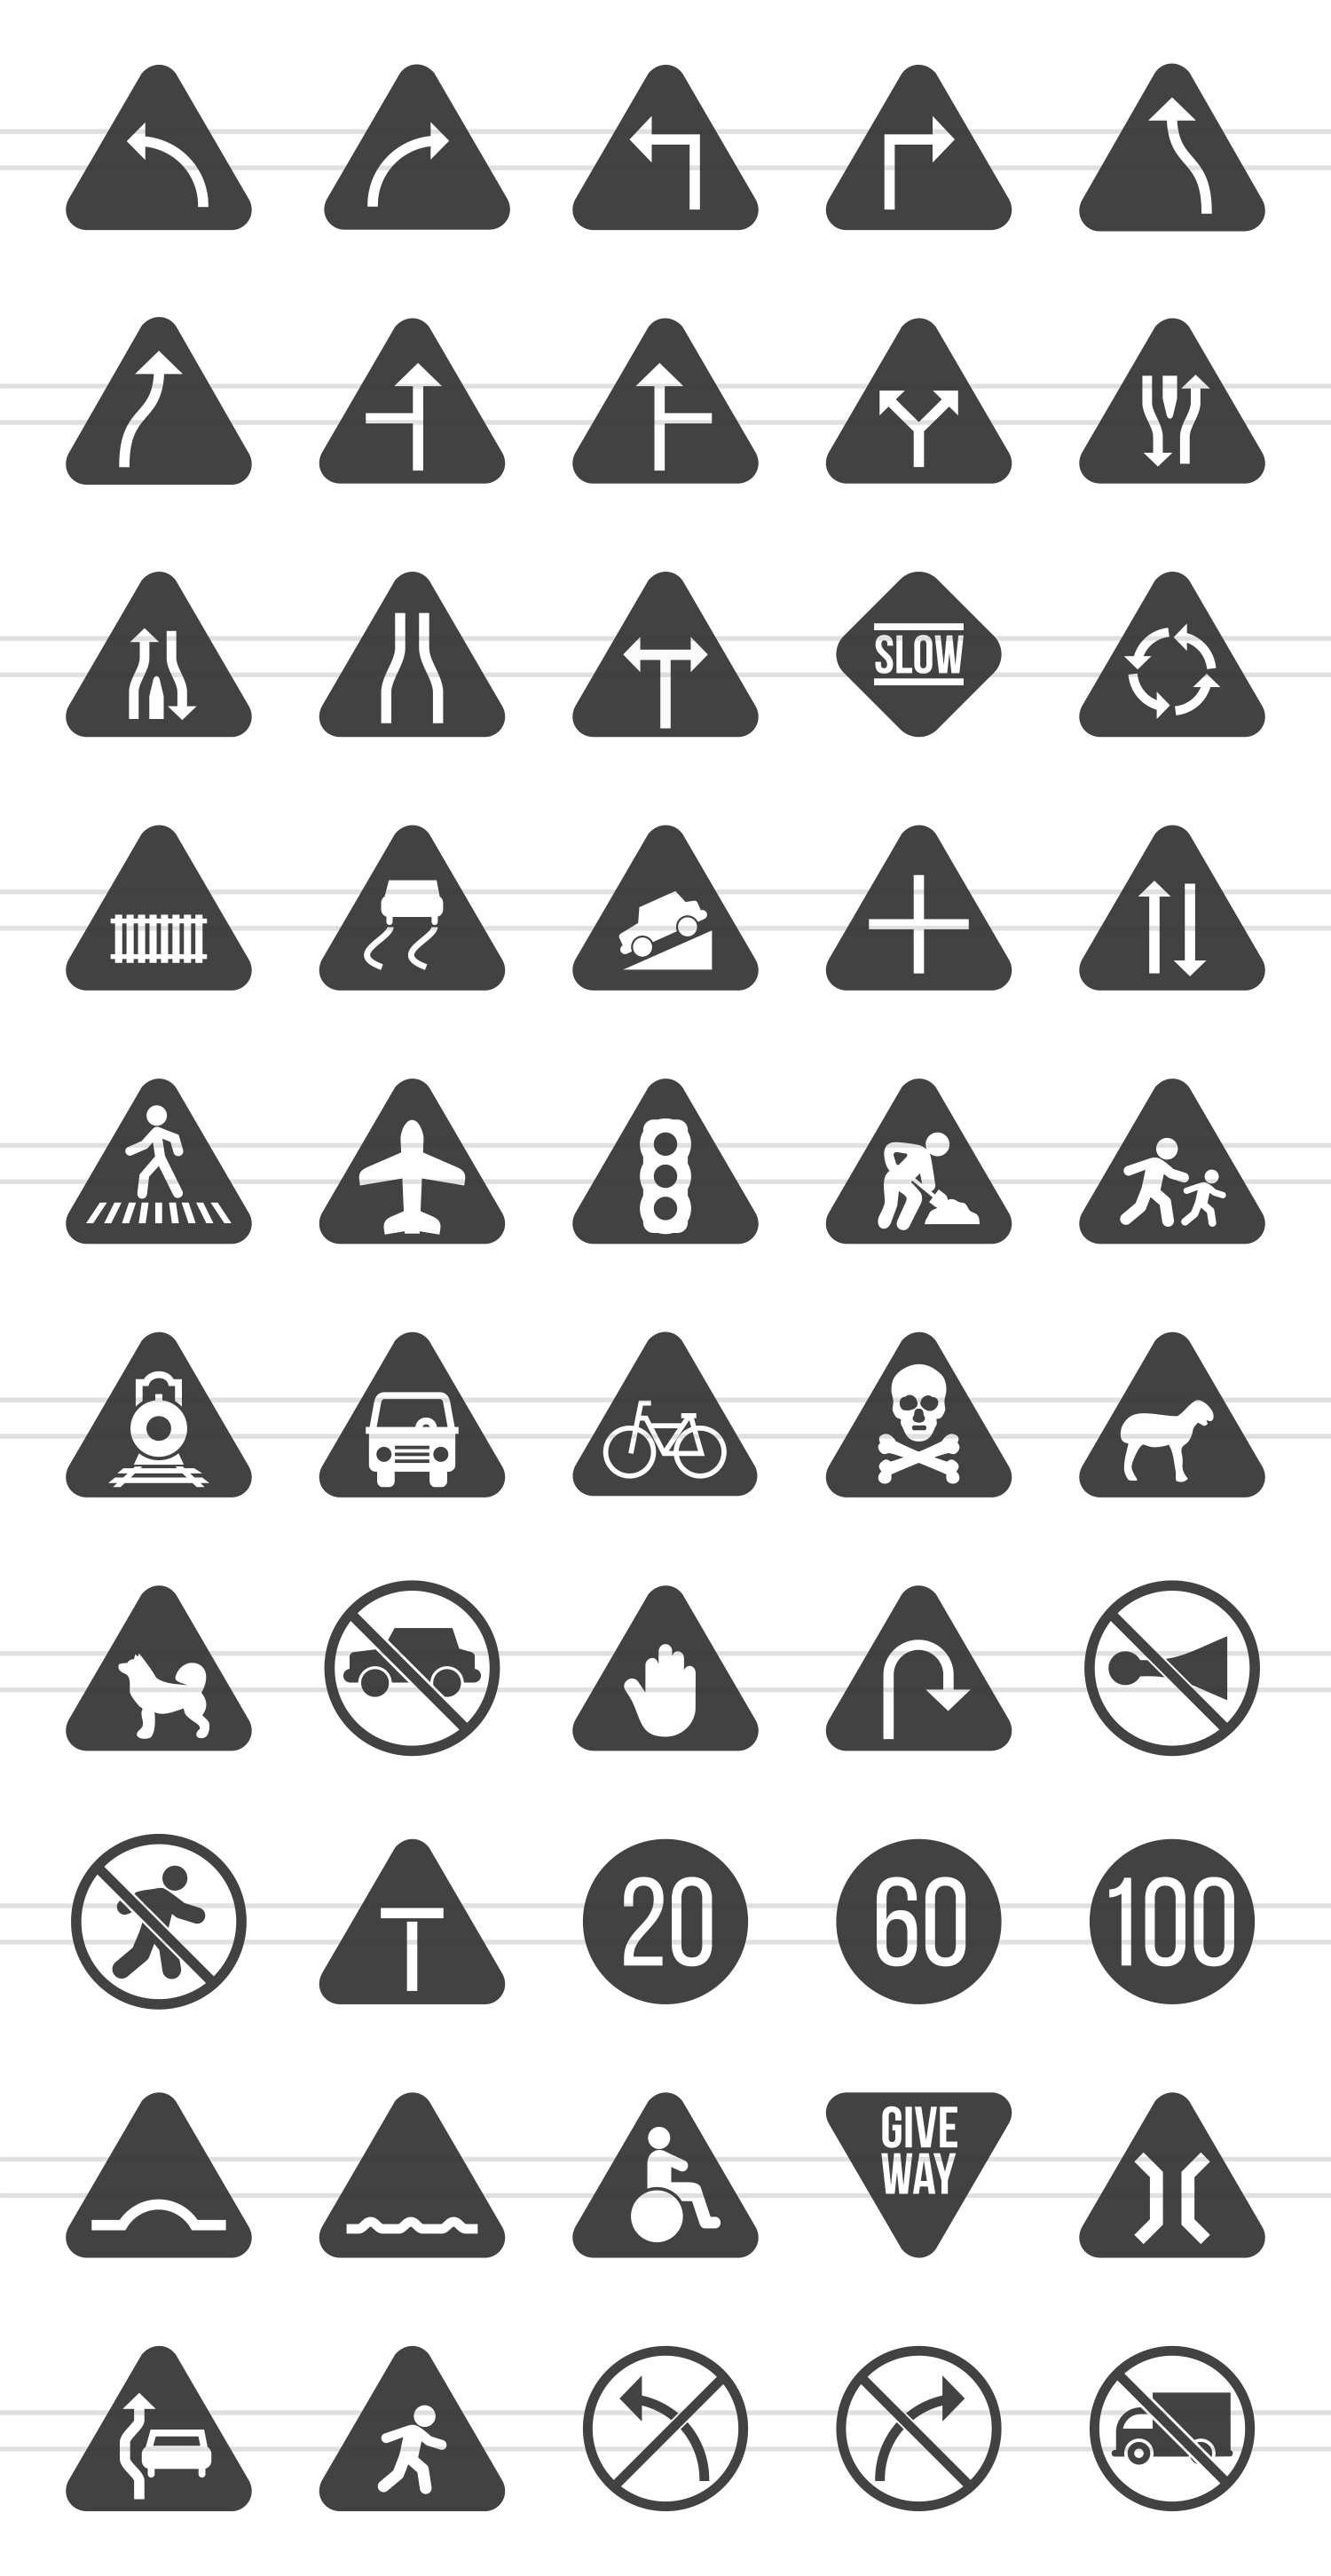 50 Traffic Signs Glyph  Icons example image 2